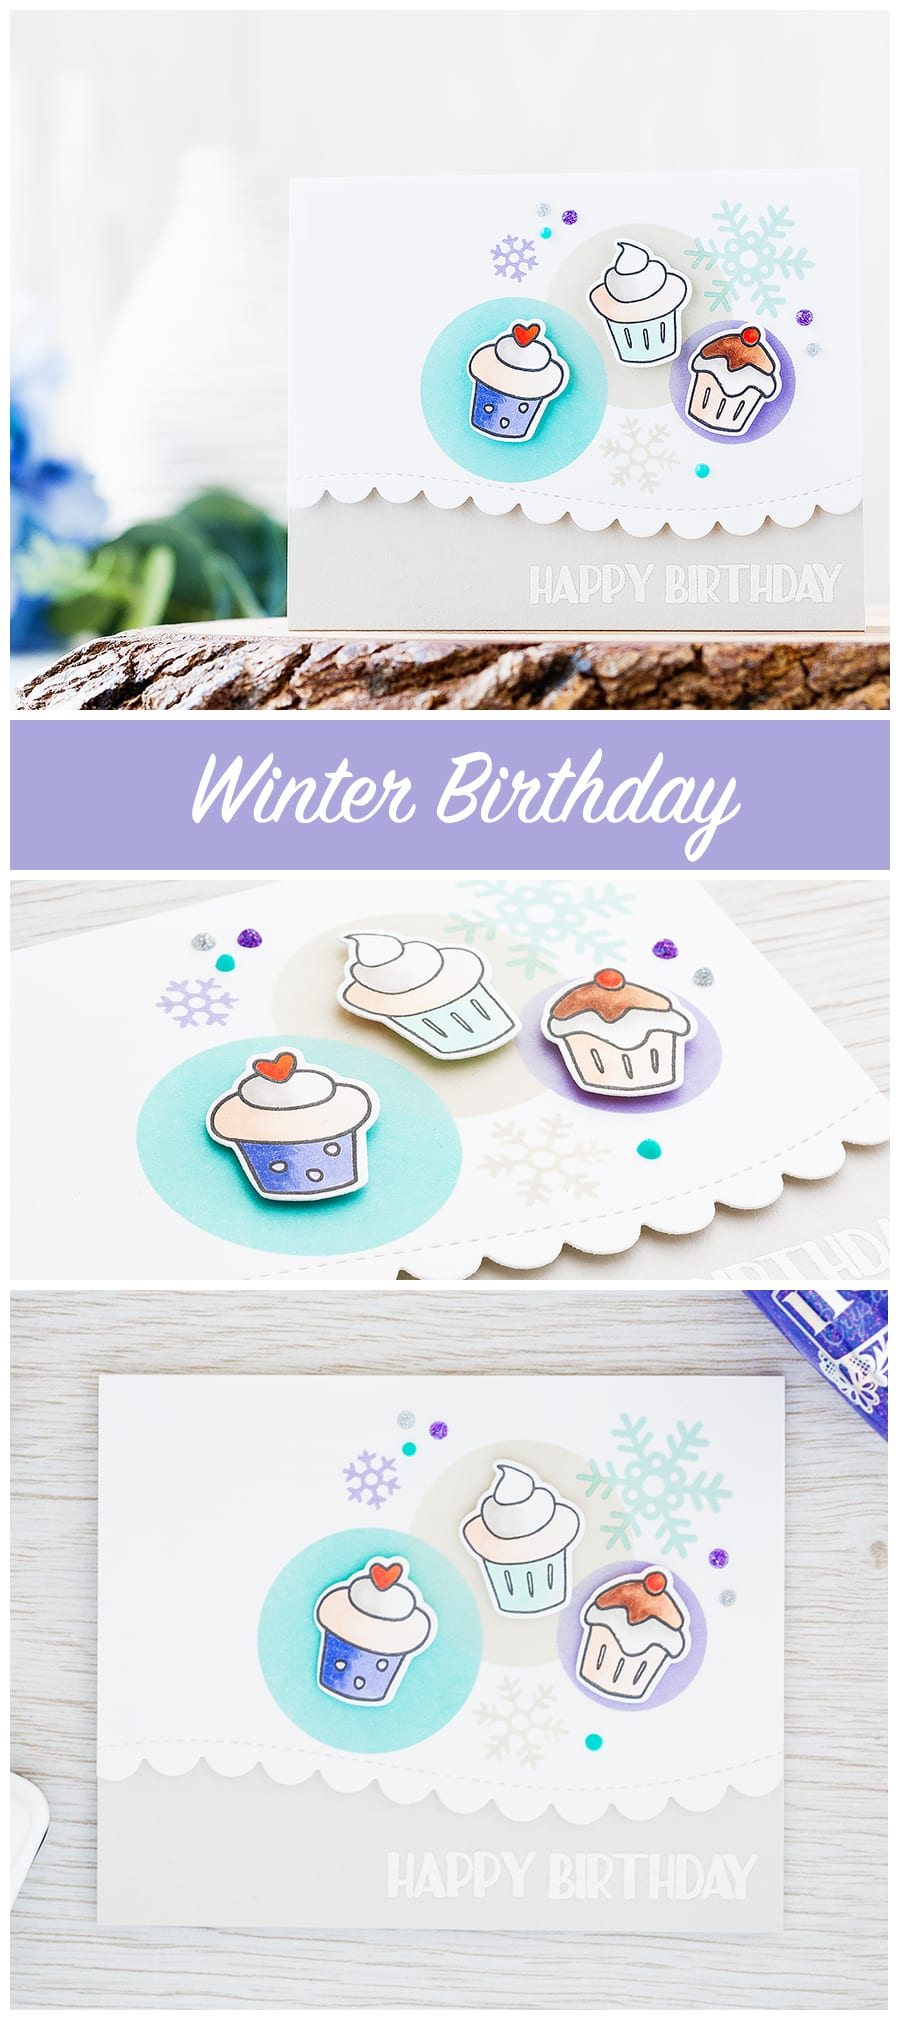 Snowflakes are the perfect accompaniment for a winter birthday card in a cool winter color palette. Find out more by clicking on the following link: http://limedoodledesign.com/2016/12/cool-cupcake-winter-birthday/